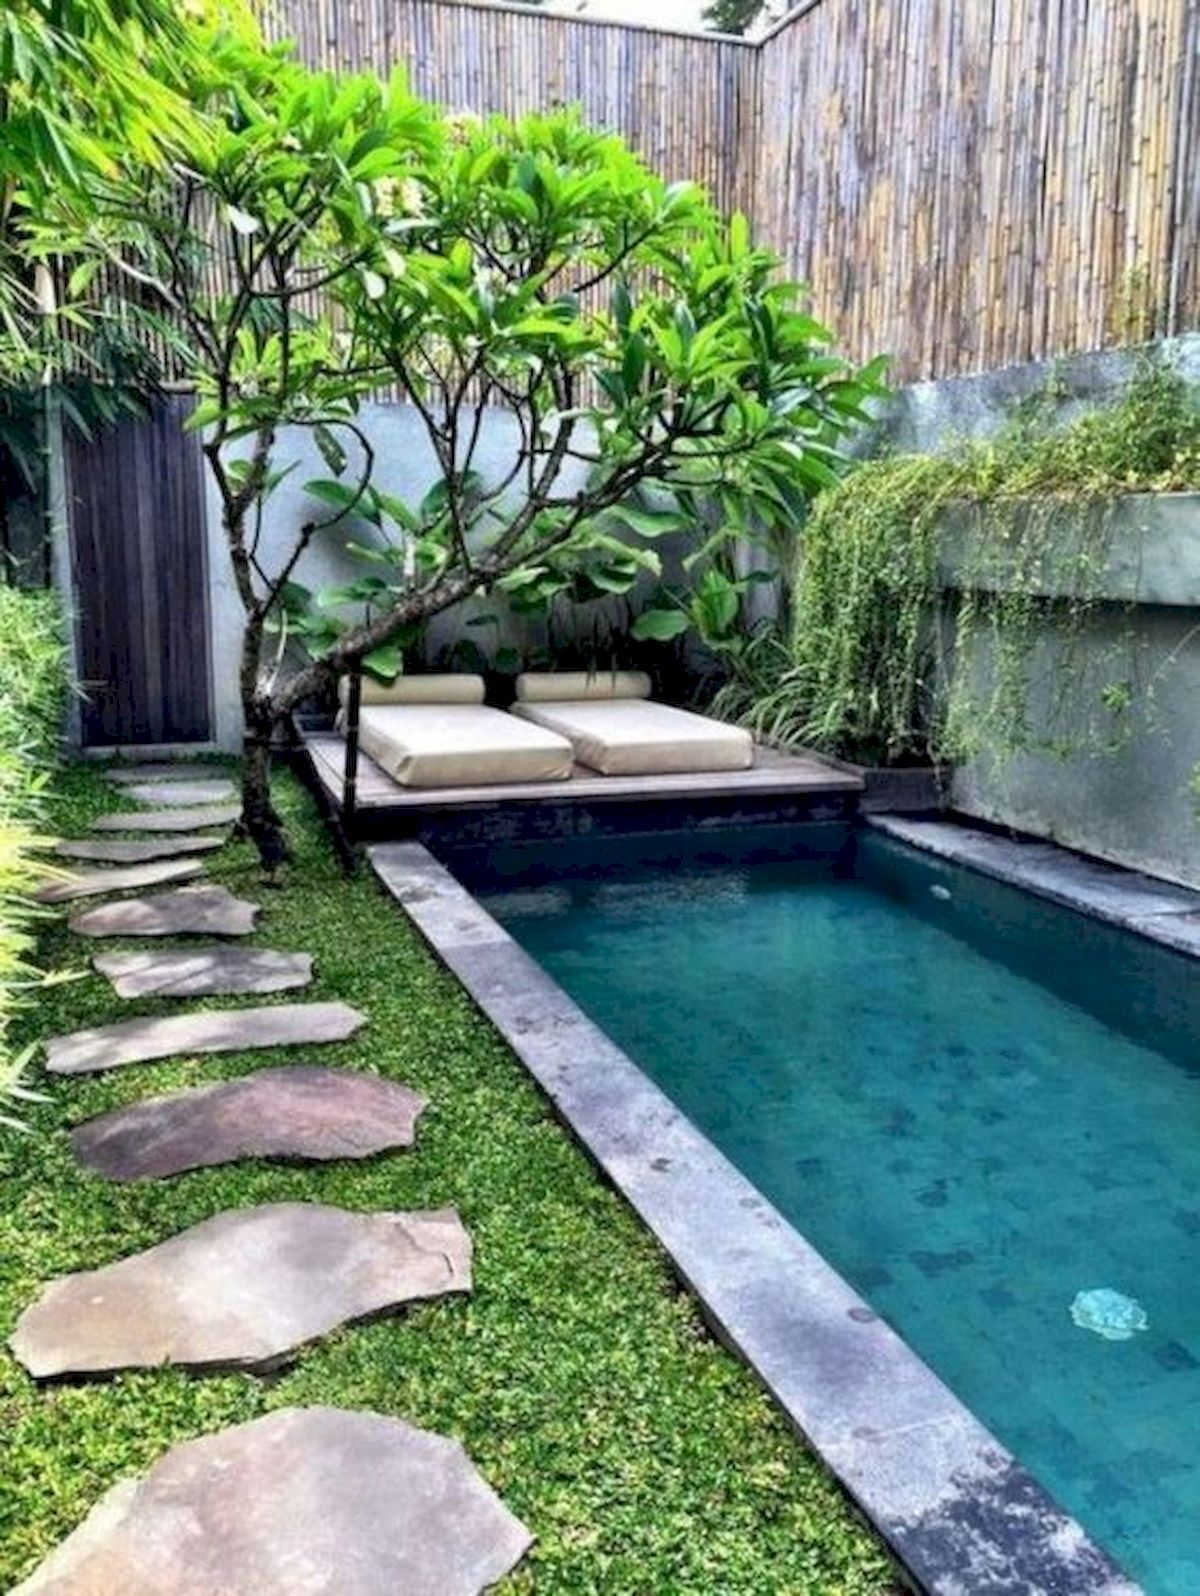 50 Gorgeous Small Swimming Pool Ideas for Small Backyard #poolimgartenideen